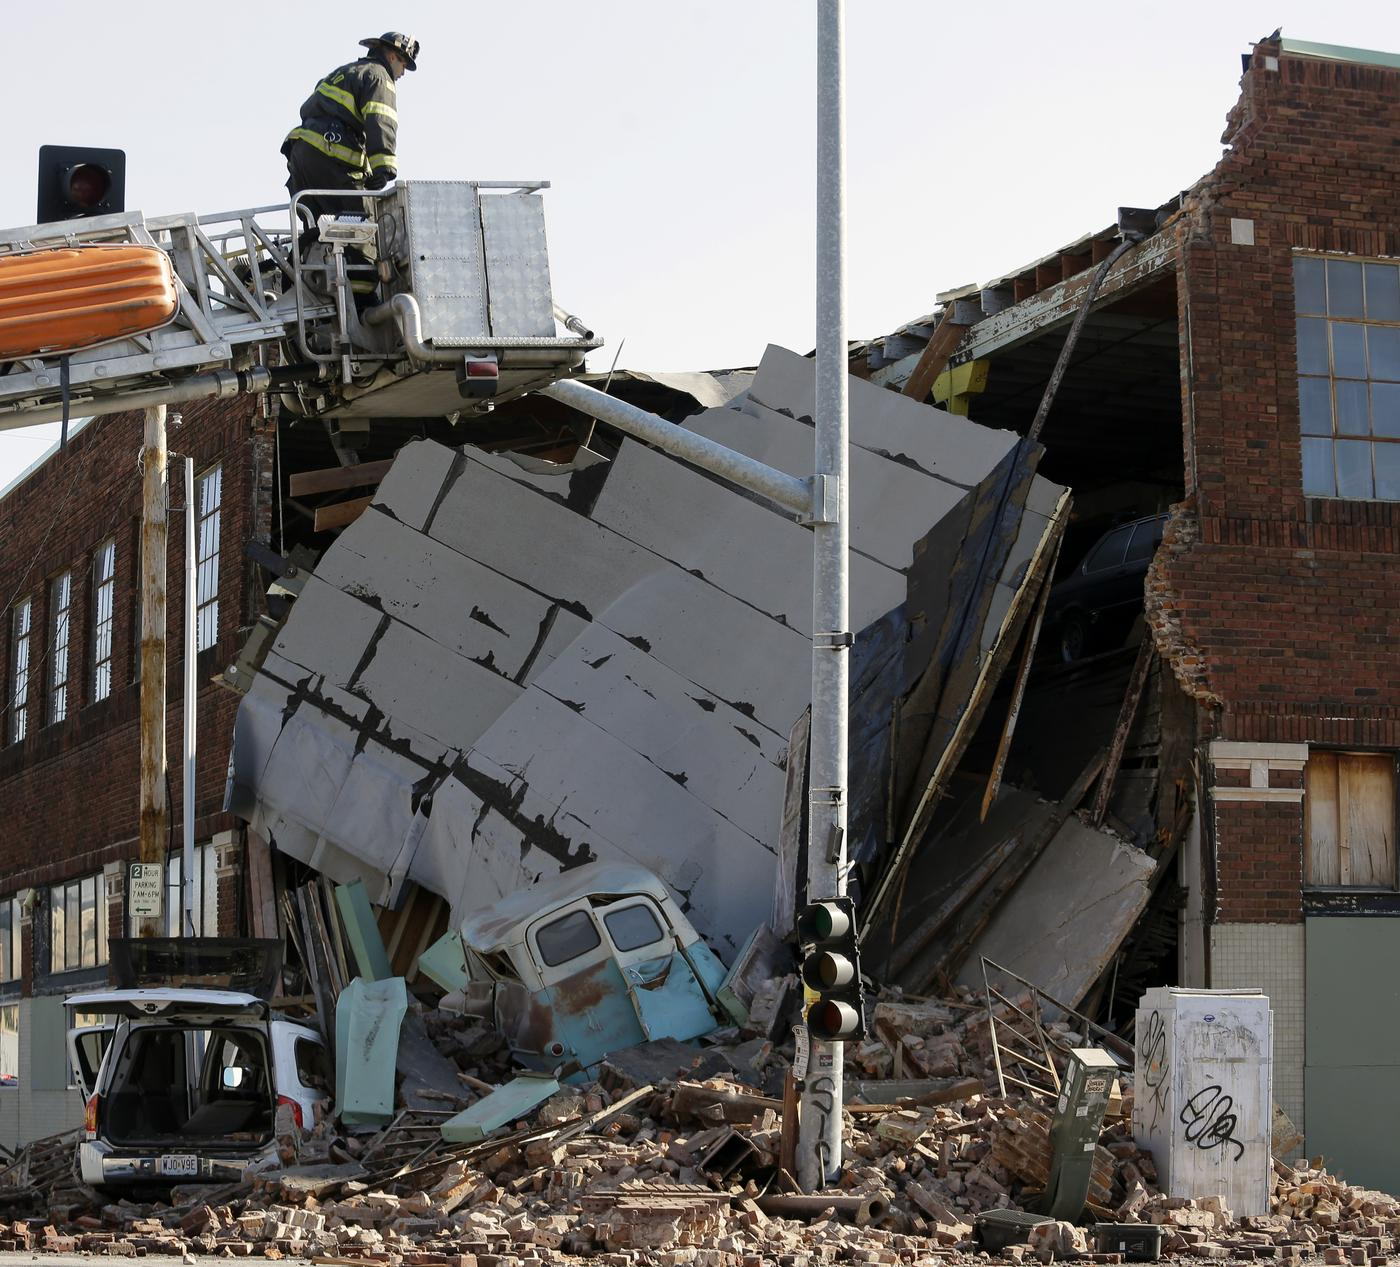 Woman flees the police, drives SUV into building, causing it to collapse